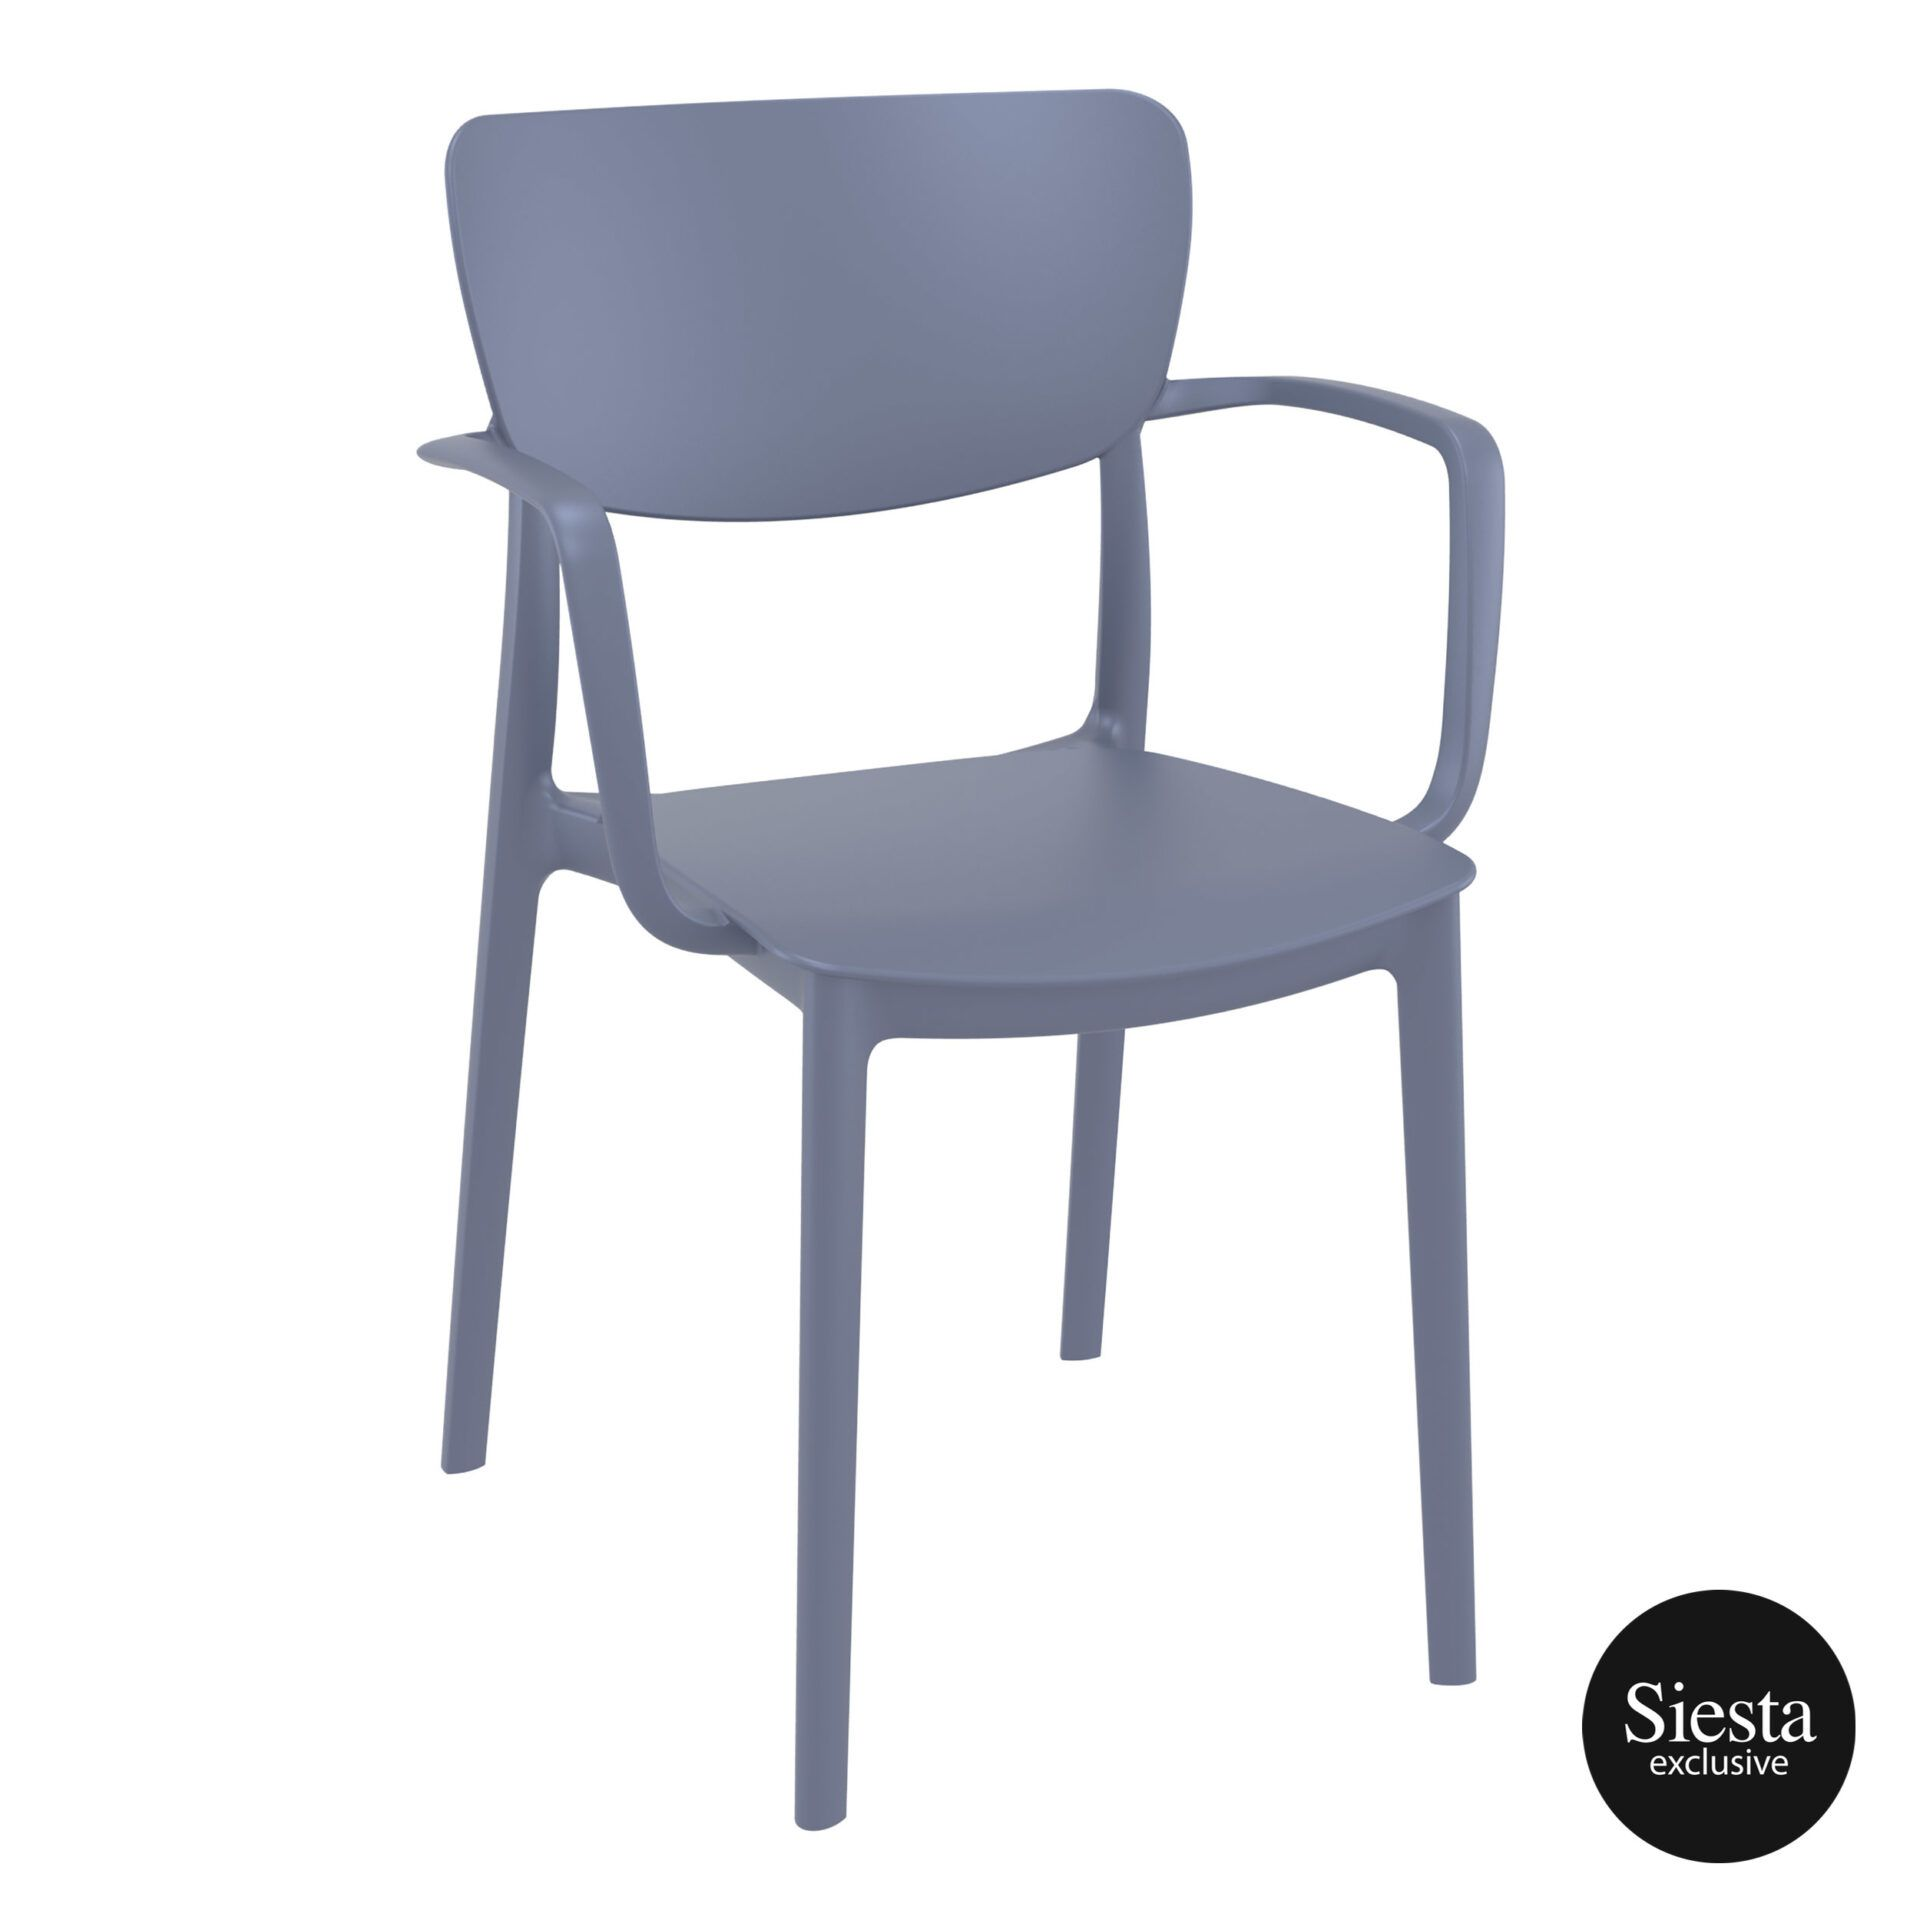 polypropylene hospitality seating lisa armchair darkgrey front side 1